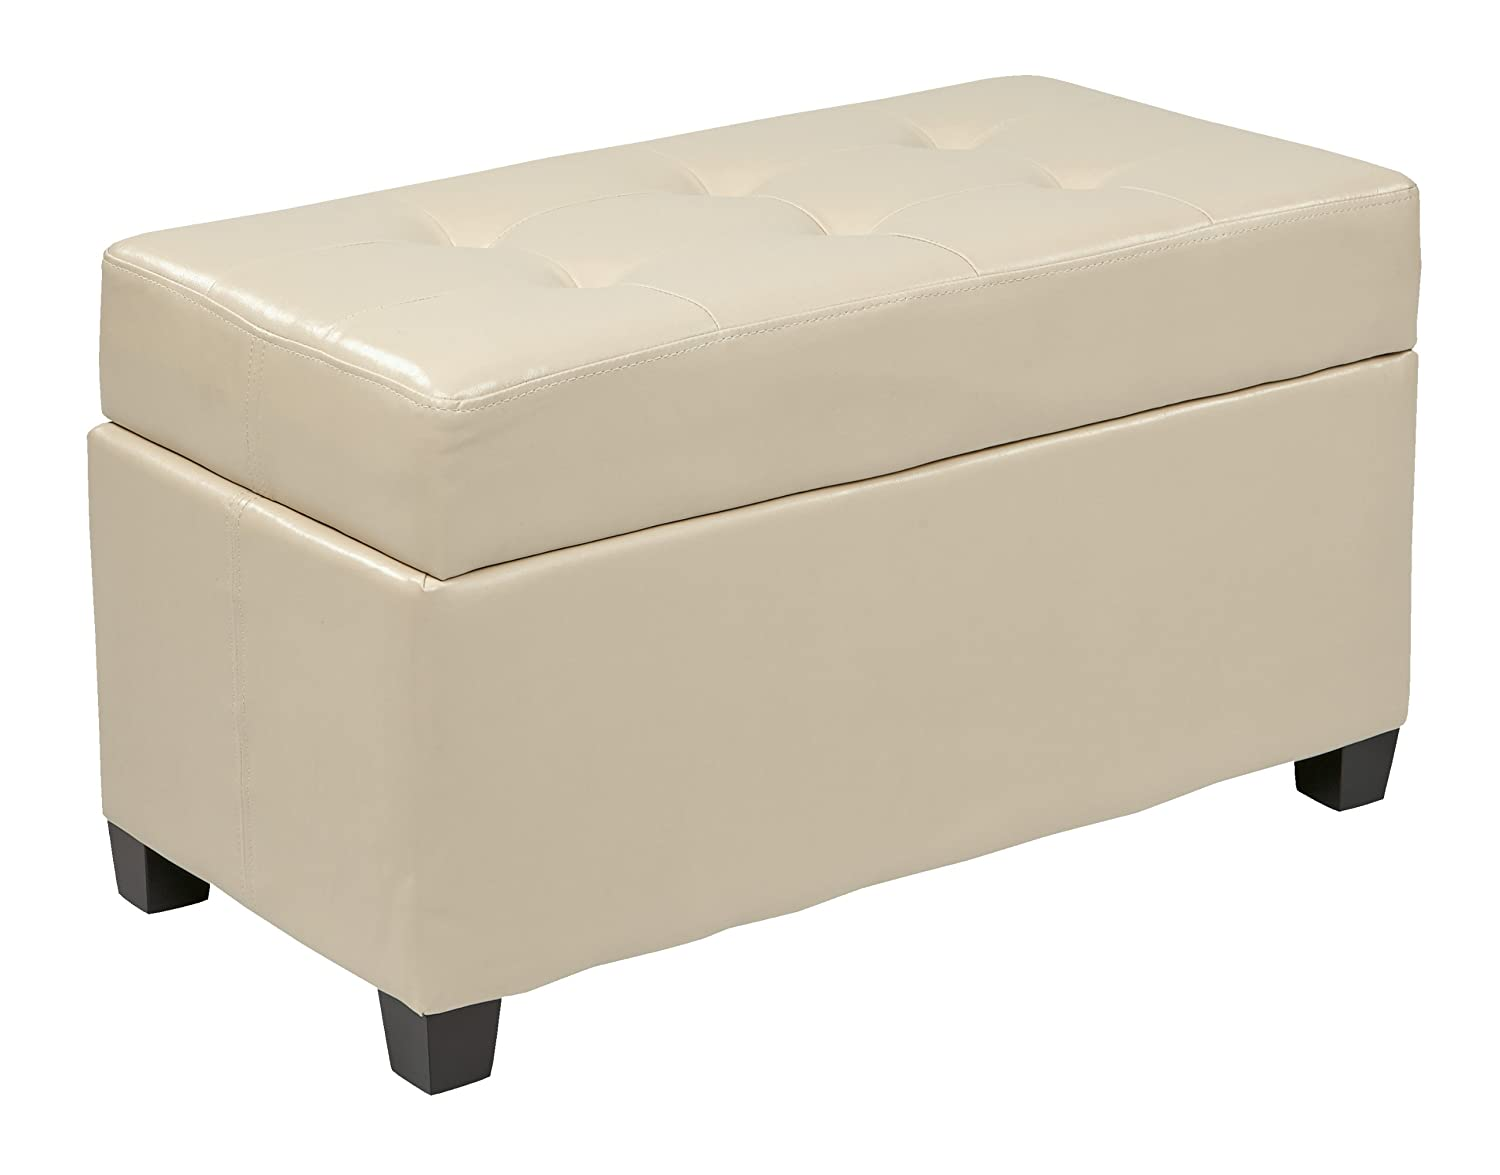 Amazoncom Office Star Metro Faux Leather Storage Ottoman with